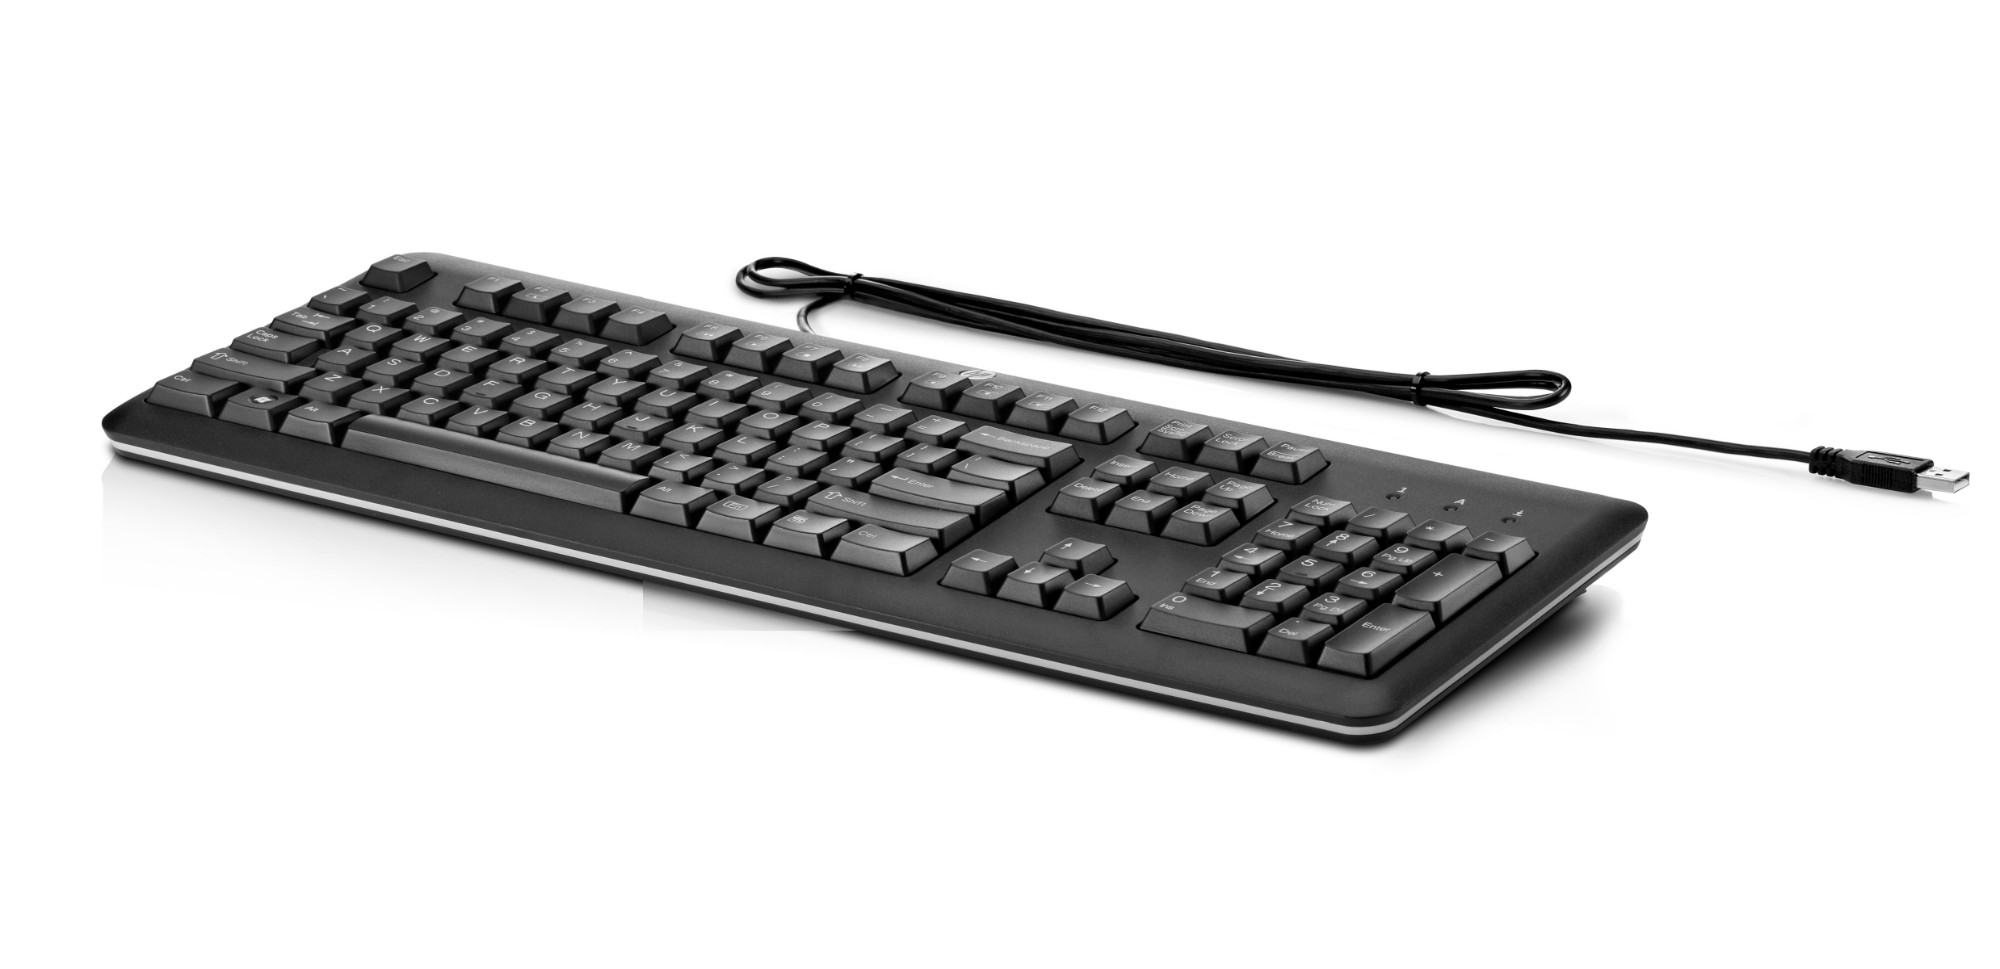 HP QY776AT keyboard USB Black